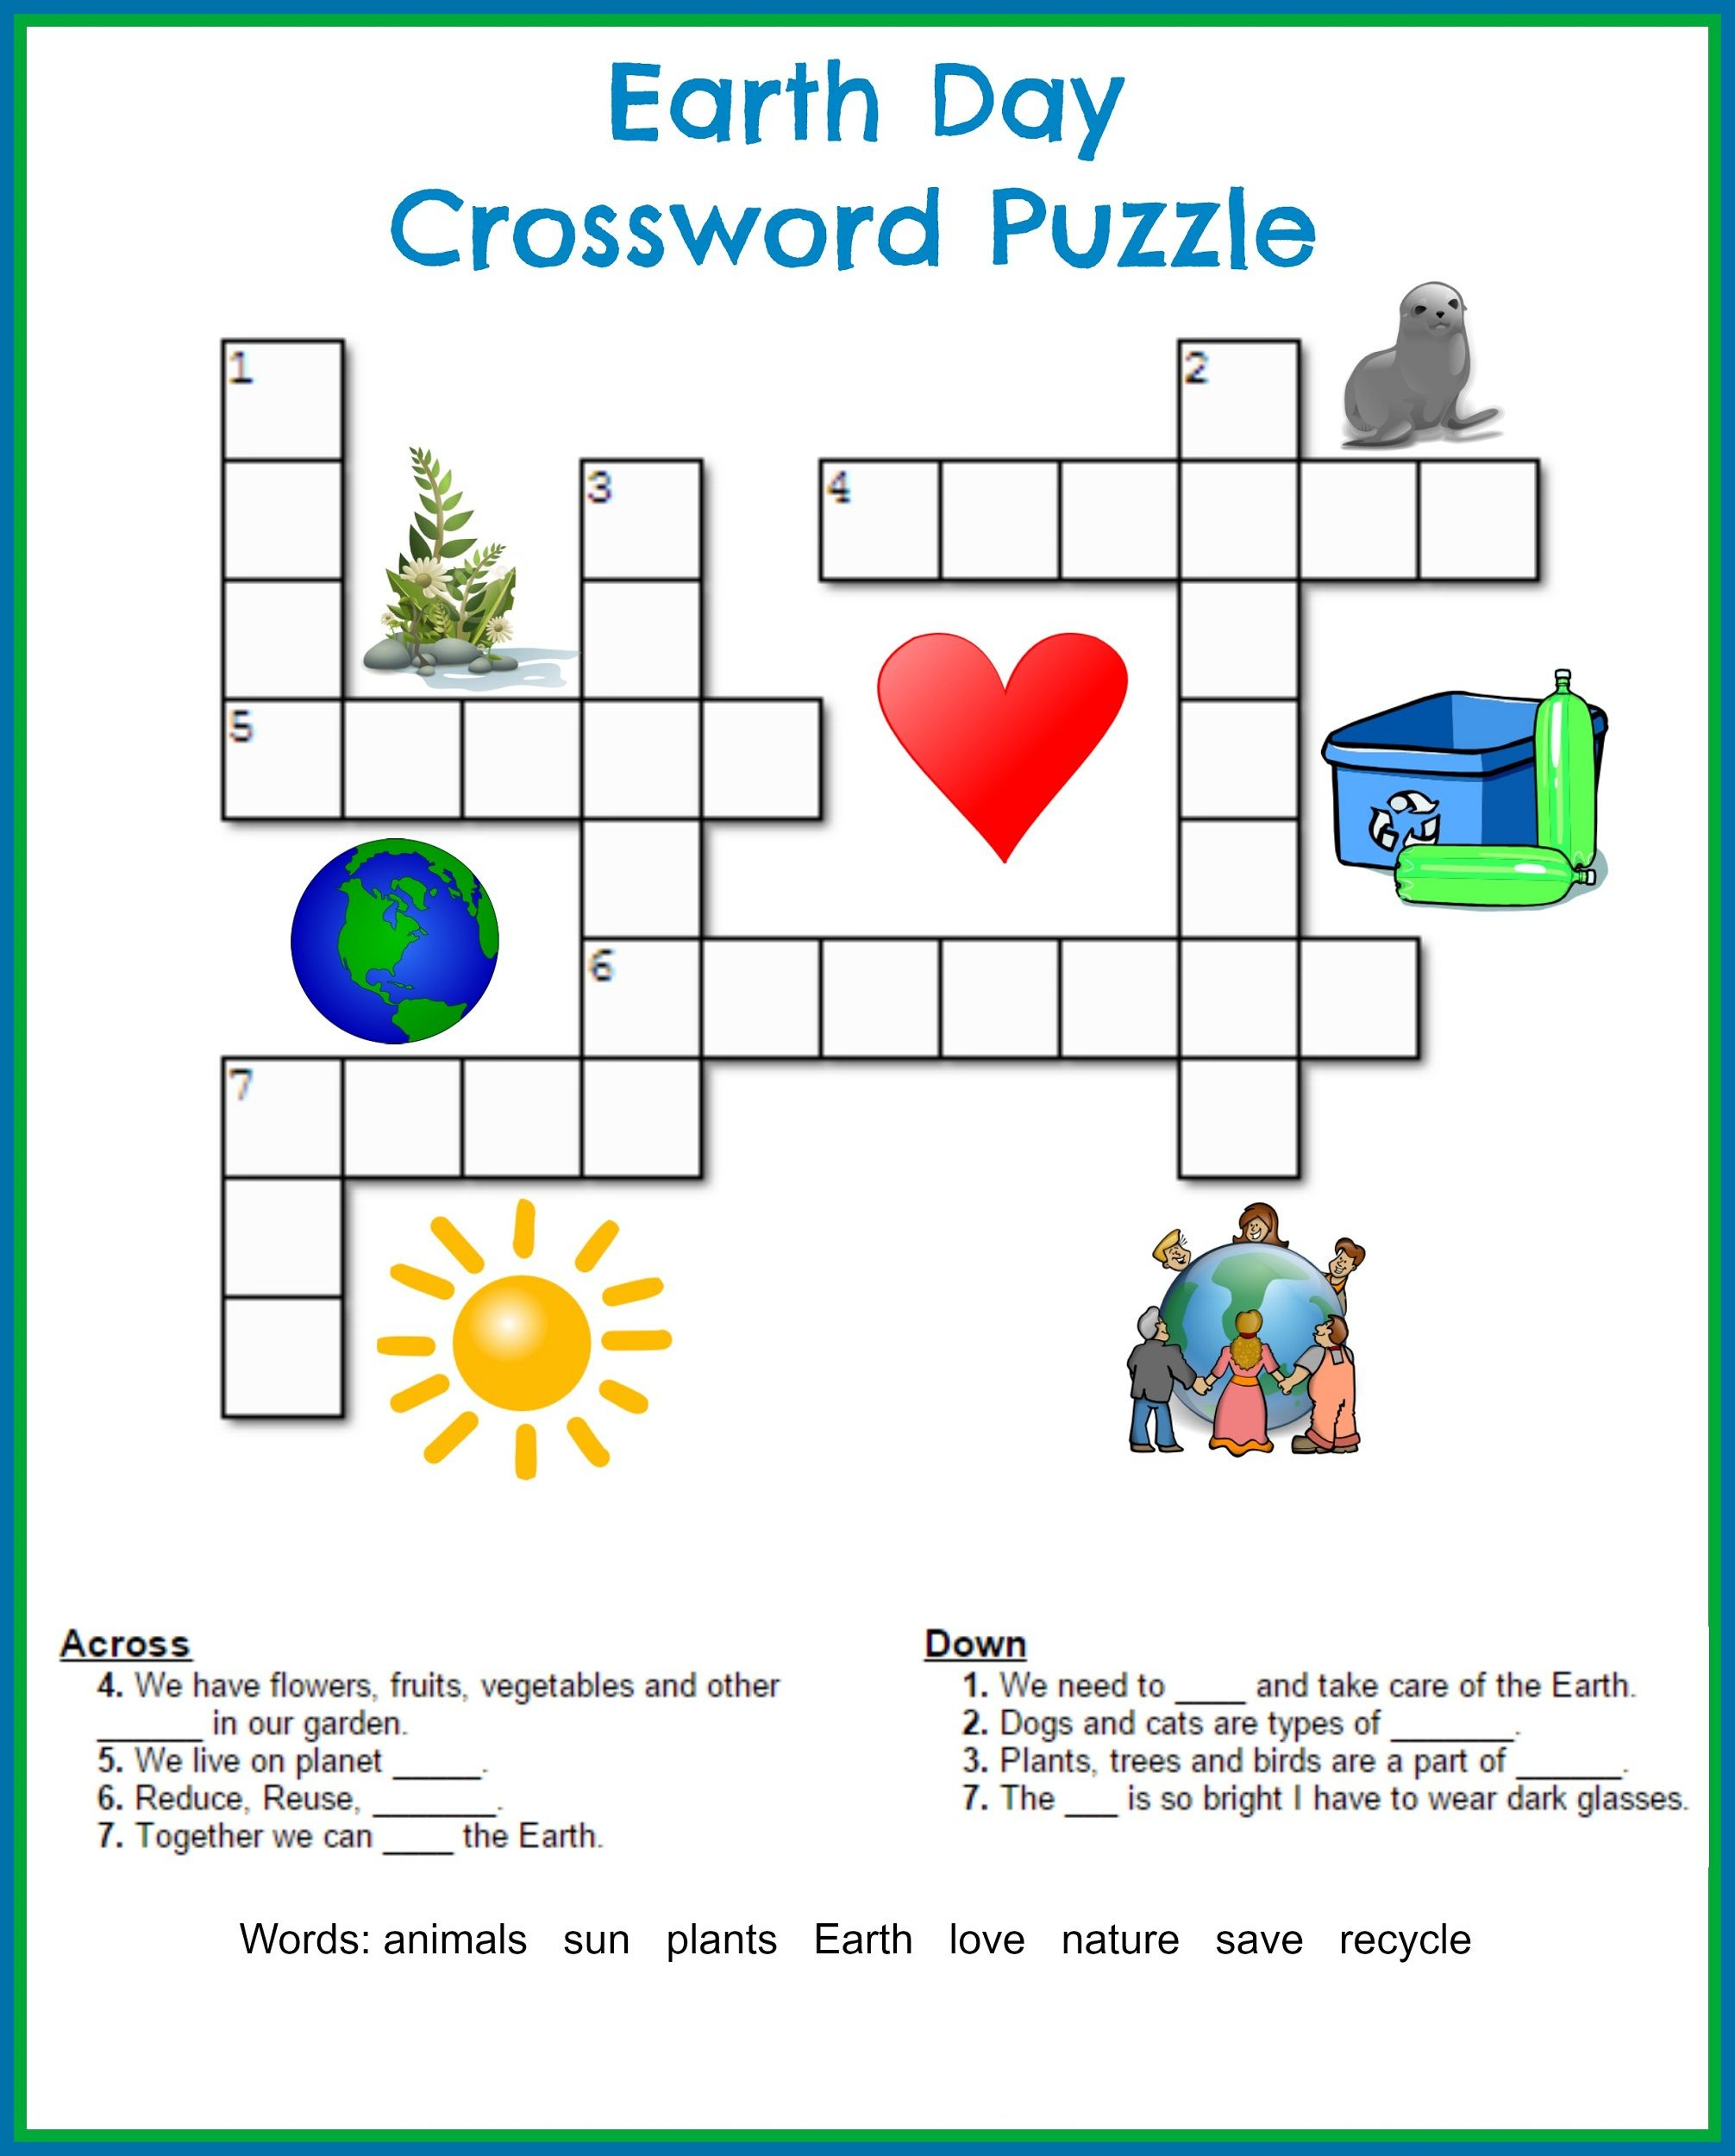 Printable Crossword Puzzles Kids | Crossword Puzzles On Earth - Printable Crossword Puzzle For Kindergarten